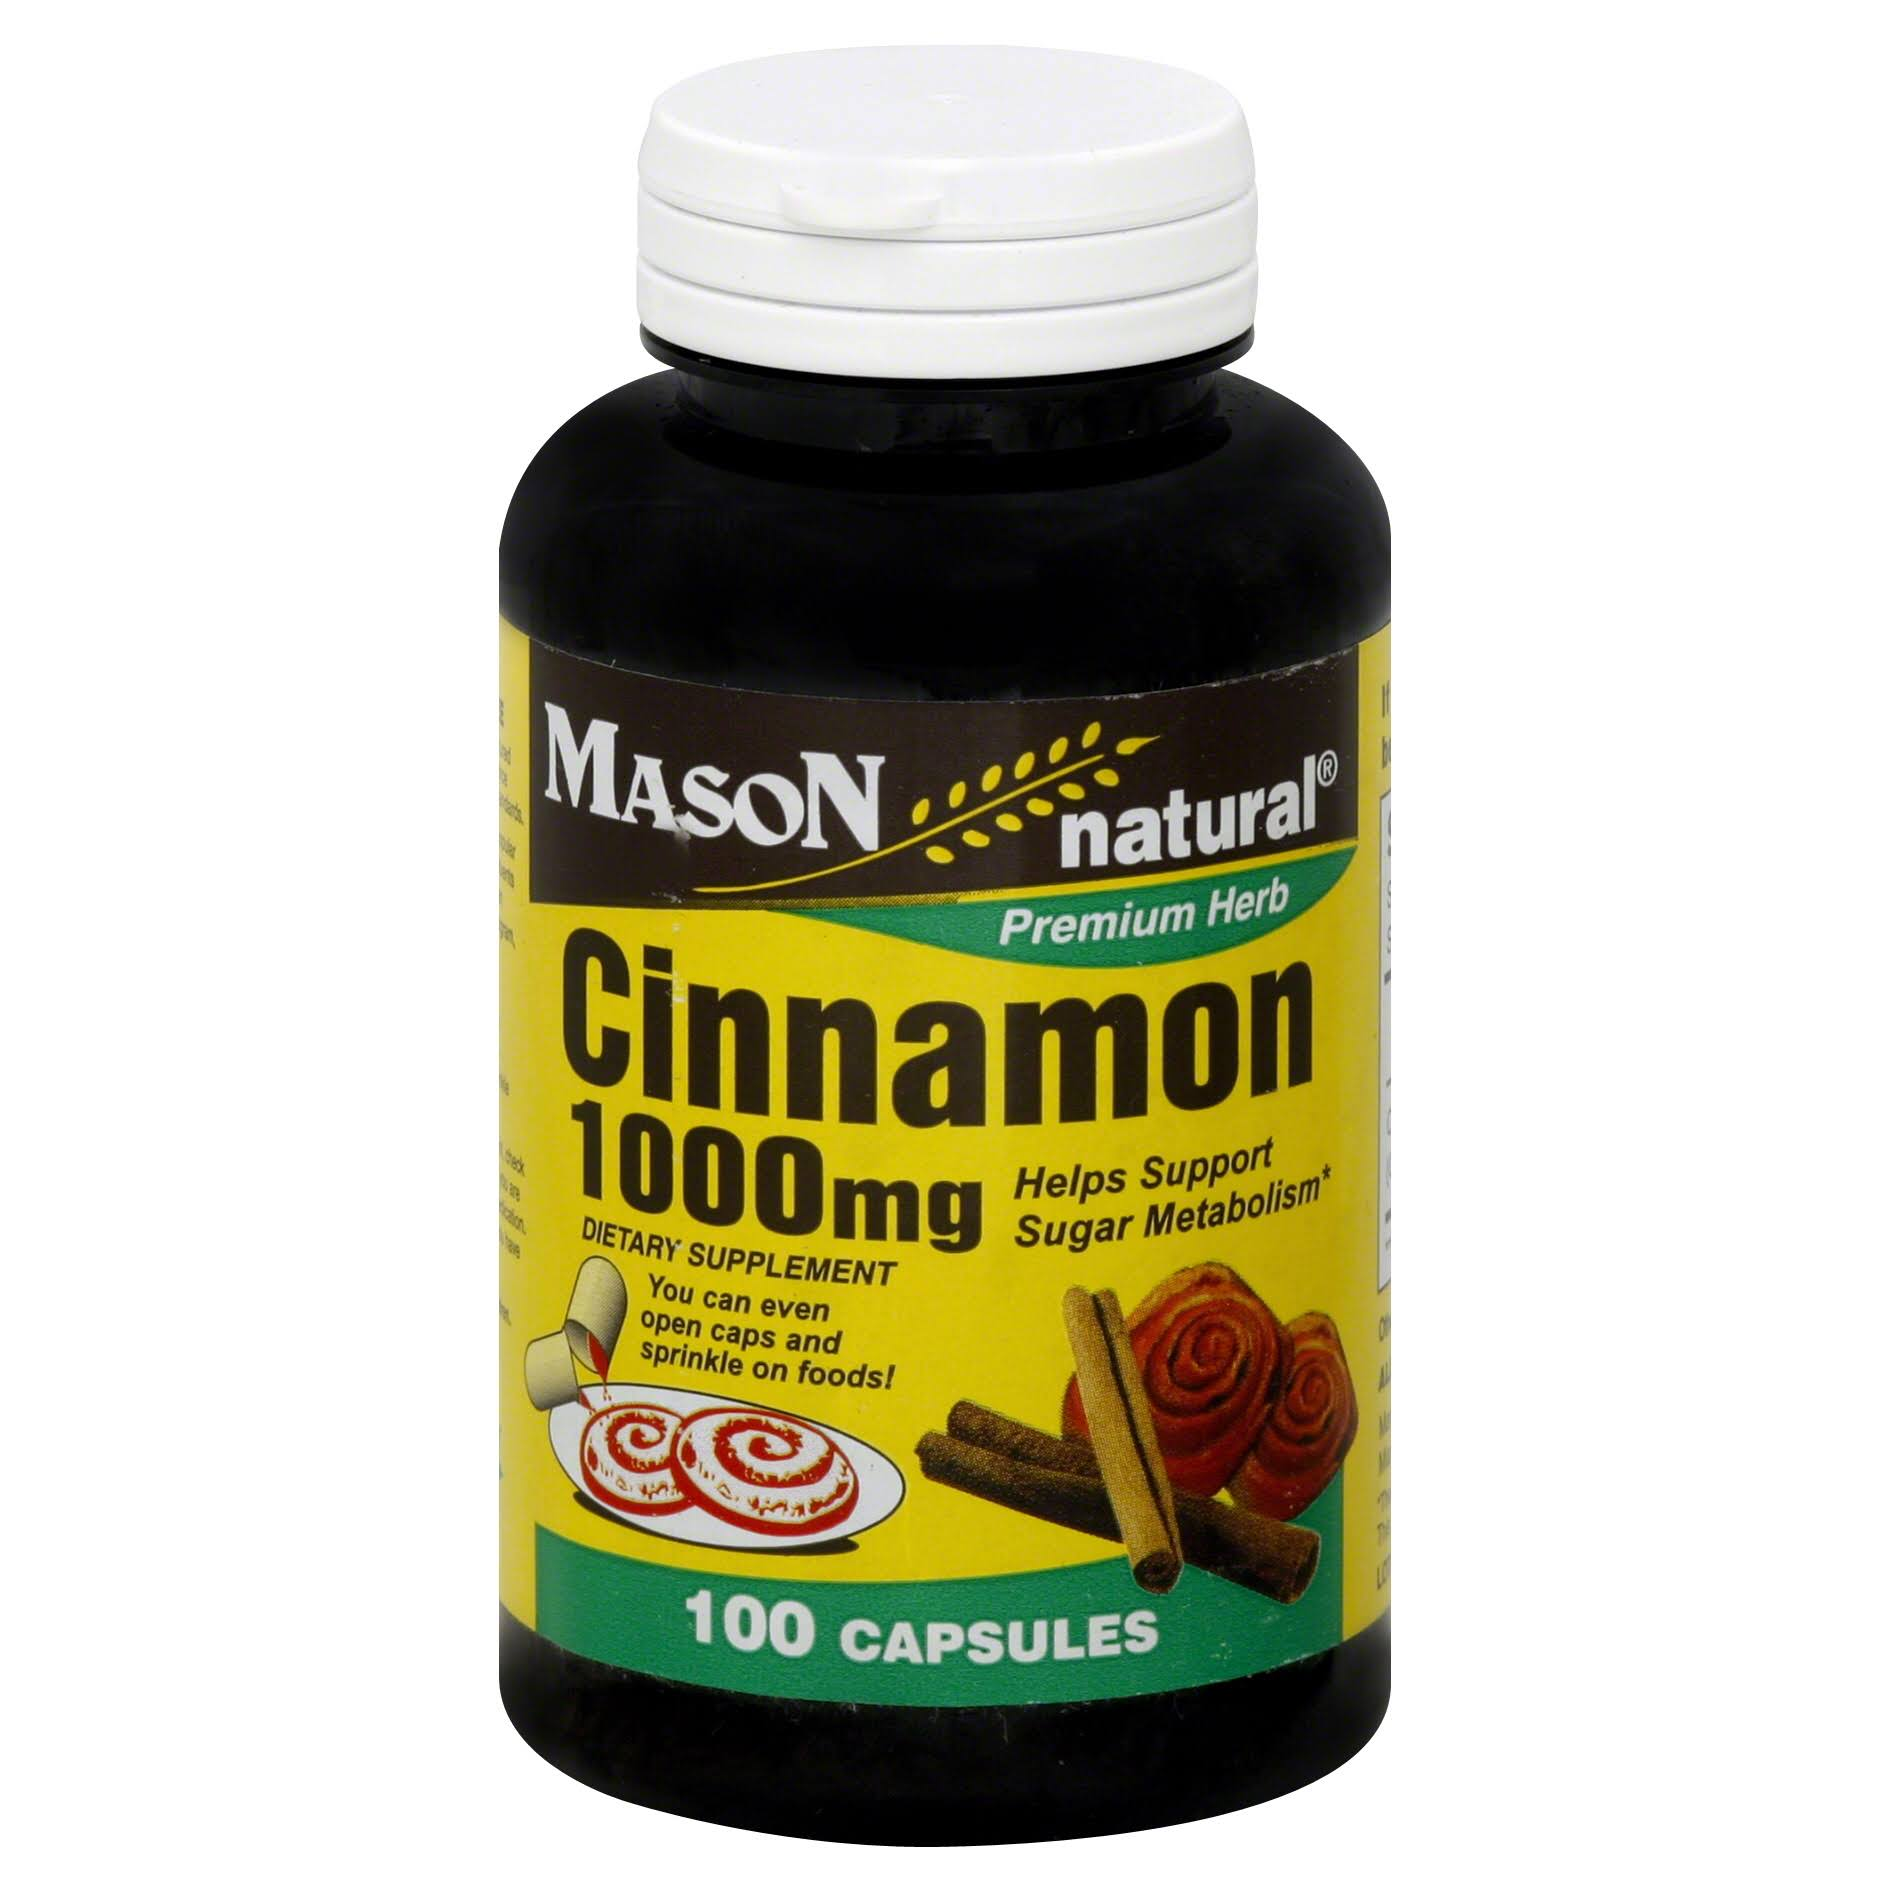 Mason Natural Premium Herb Cinnamon Supplement - 1000mg, 100ct